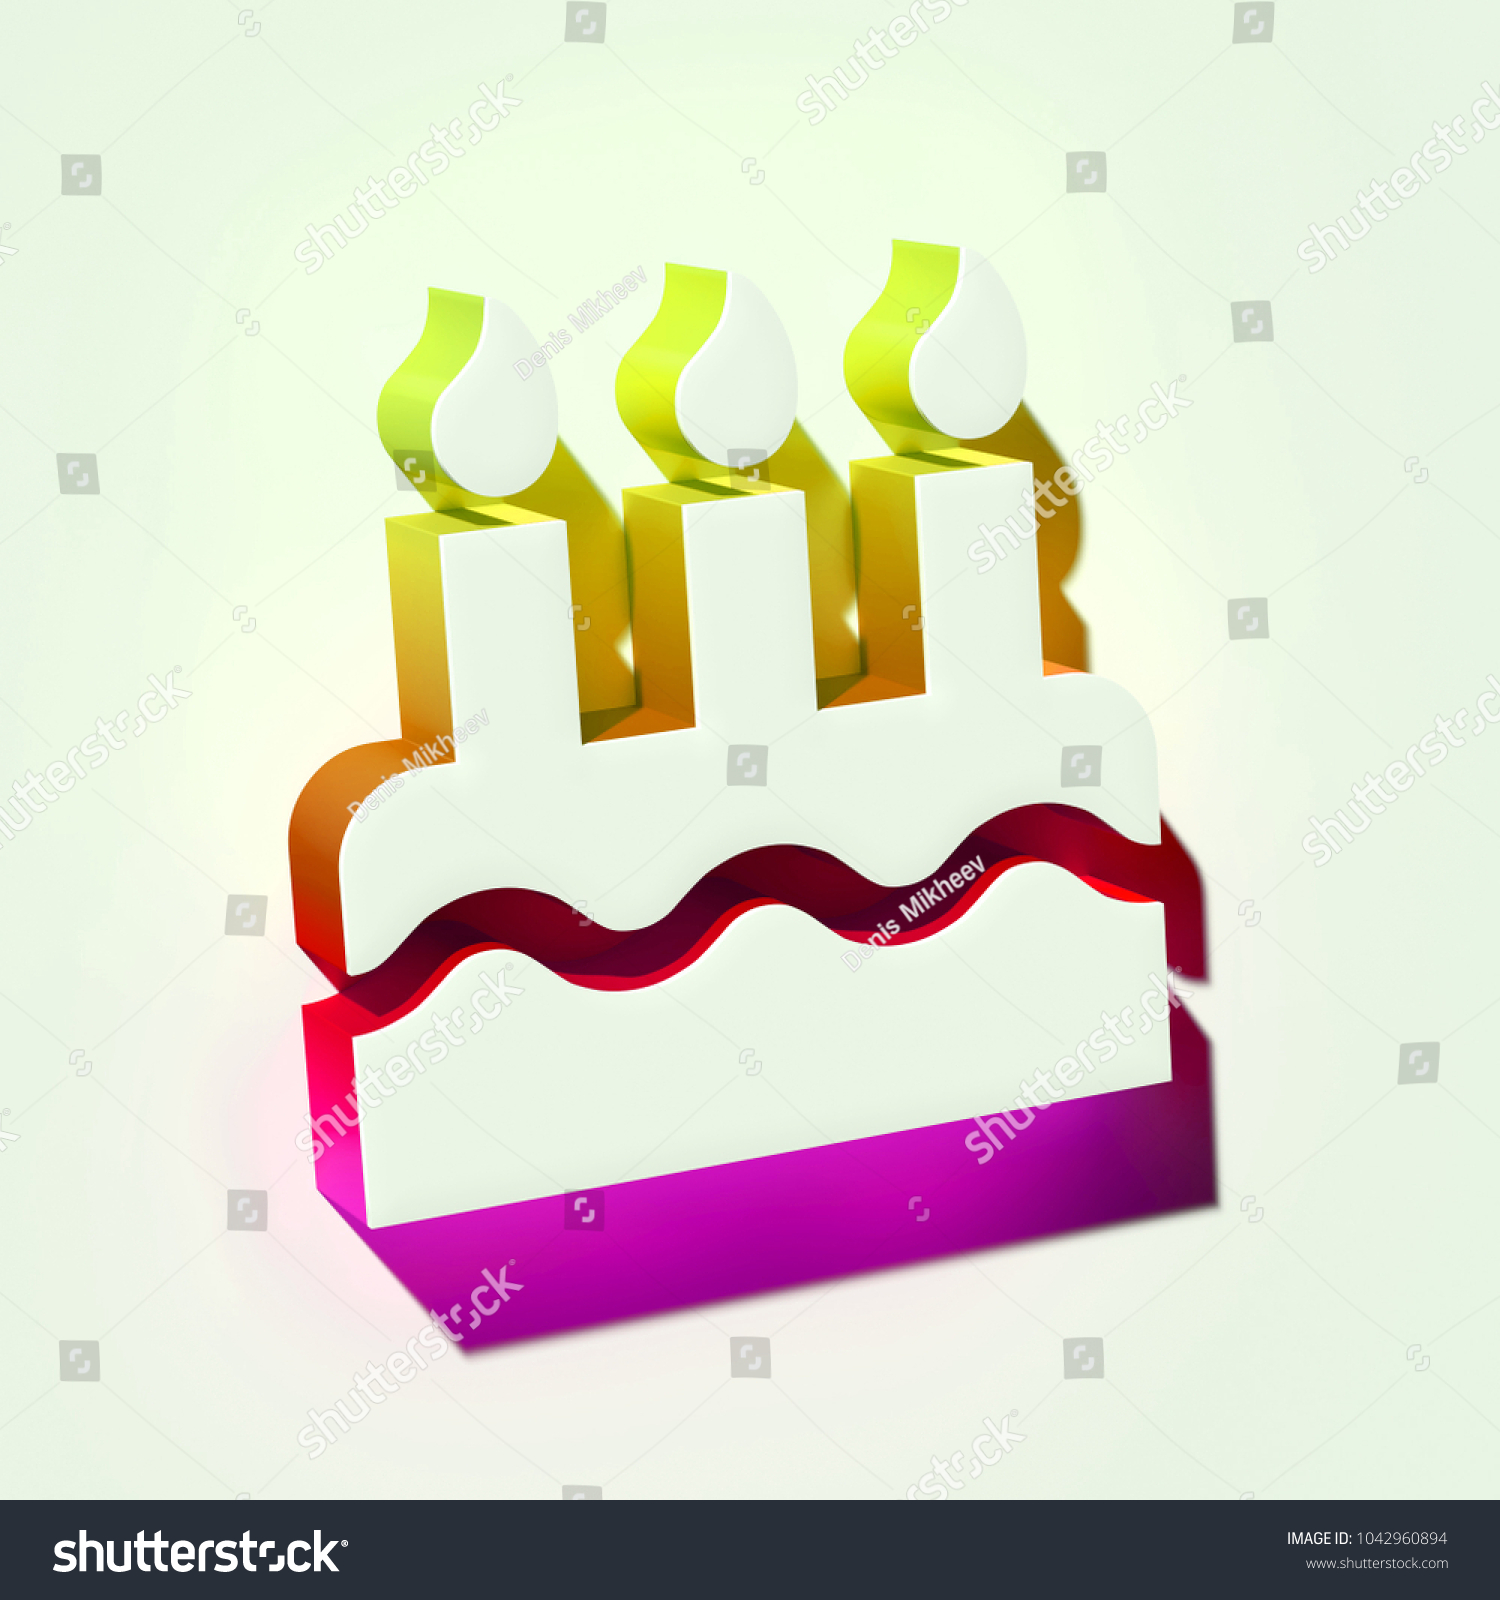 White Birthday Cake Icon 3 D Illustration Stock Illustration